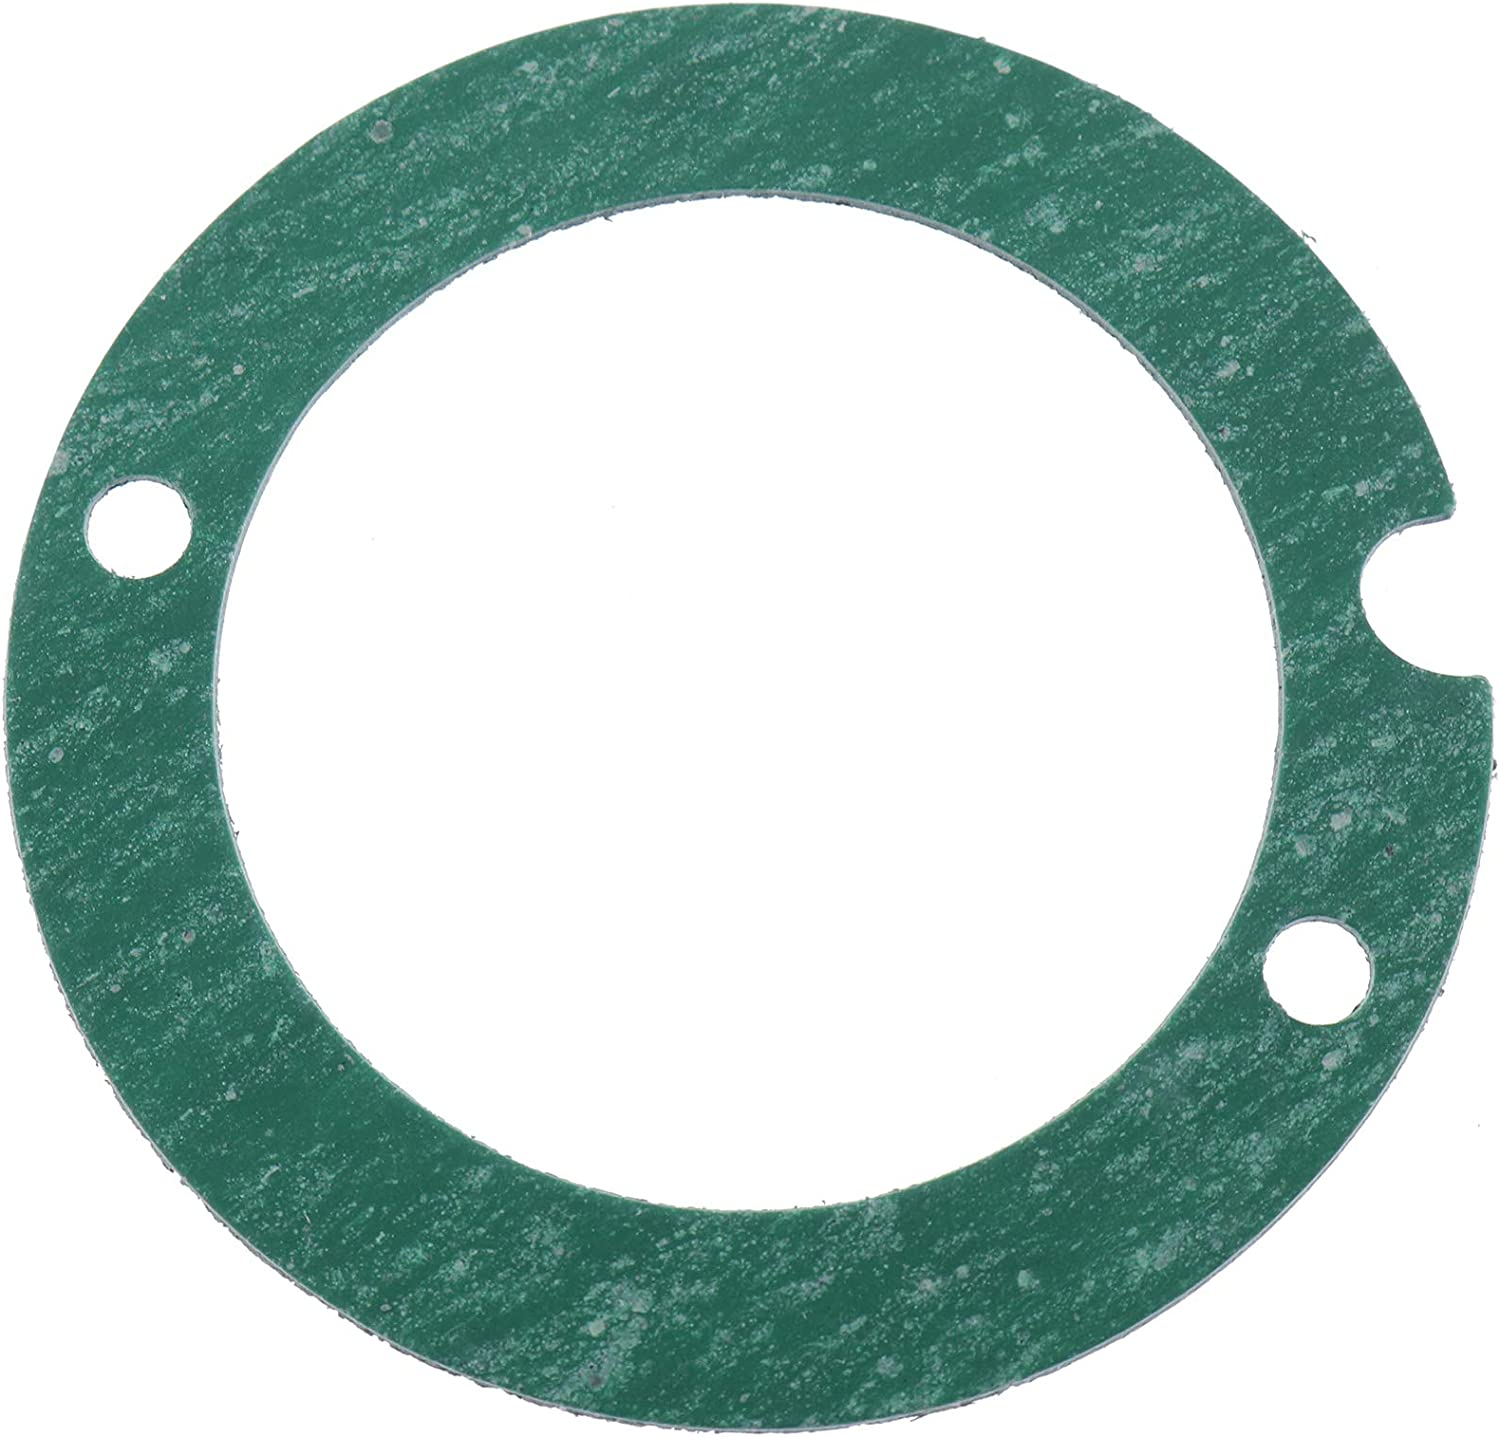 ZTUOAUMA Compact wholesale Night Heater National products Exchanger 251688060003 Gasket Heat